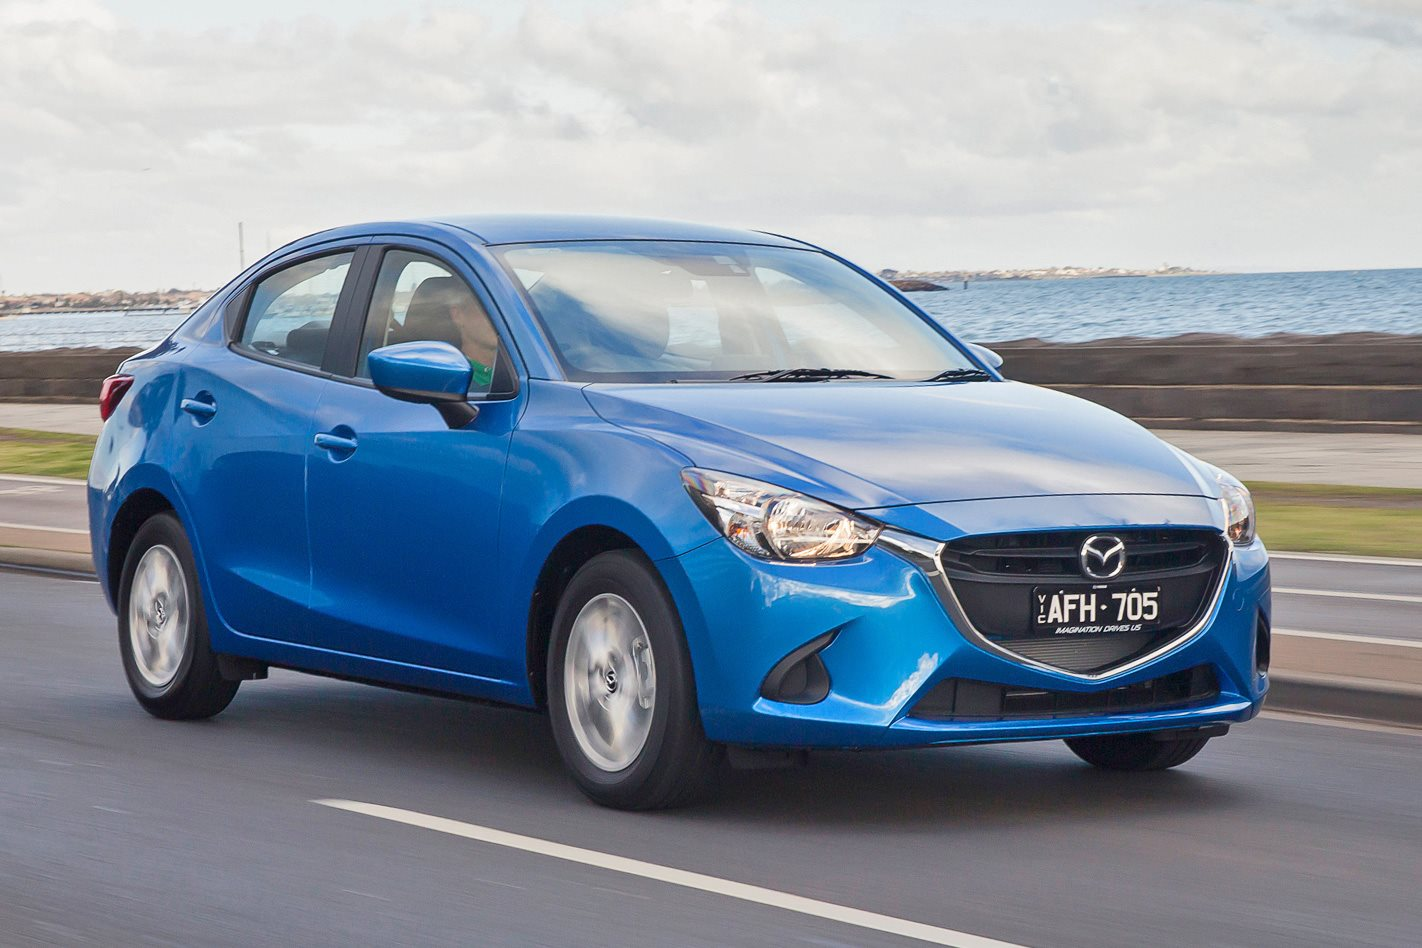 2015 mazda 2 sedan first drive review. Black Bedroom Furniture Sets. Home Design Ideas